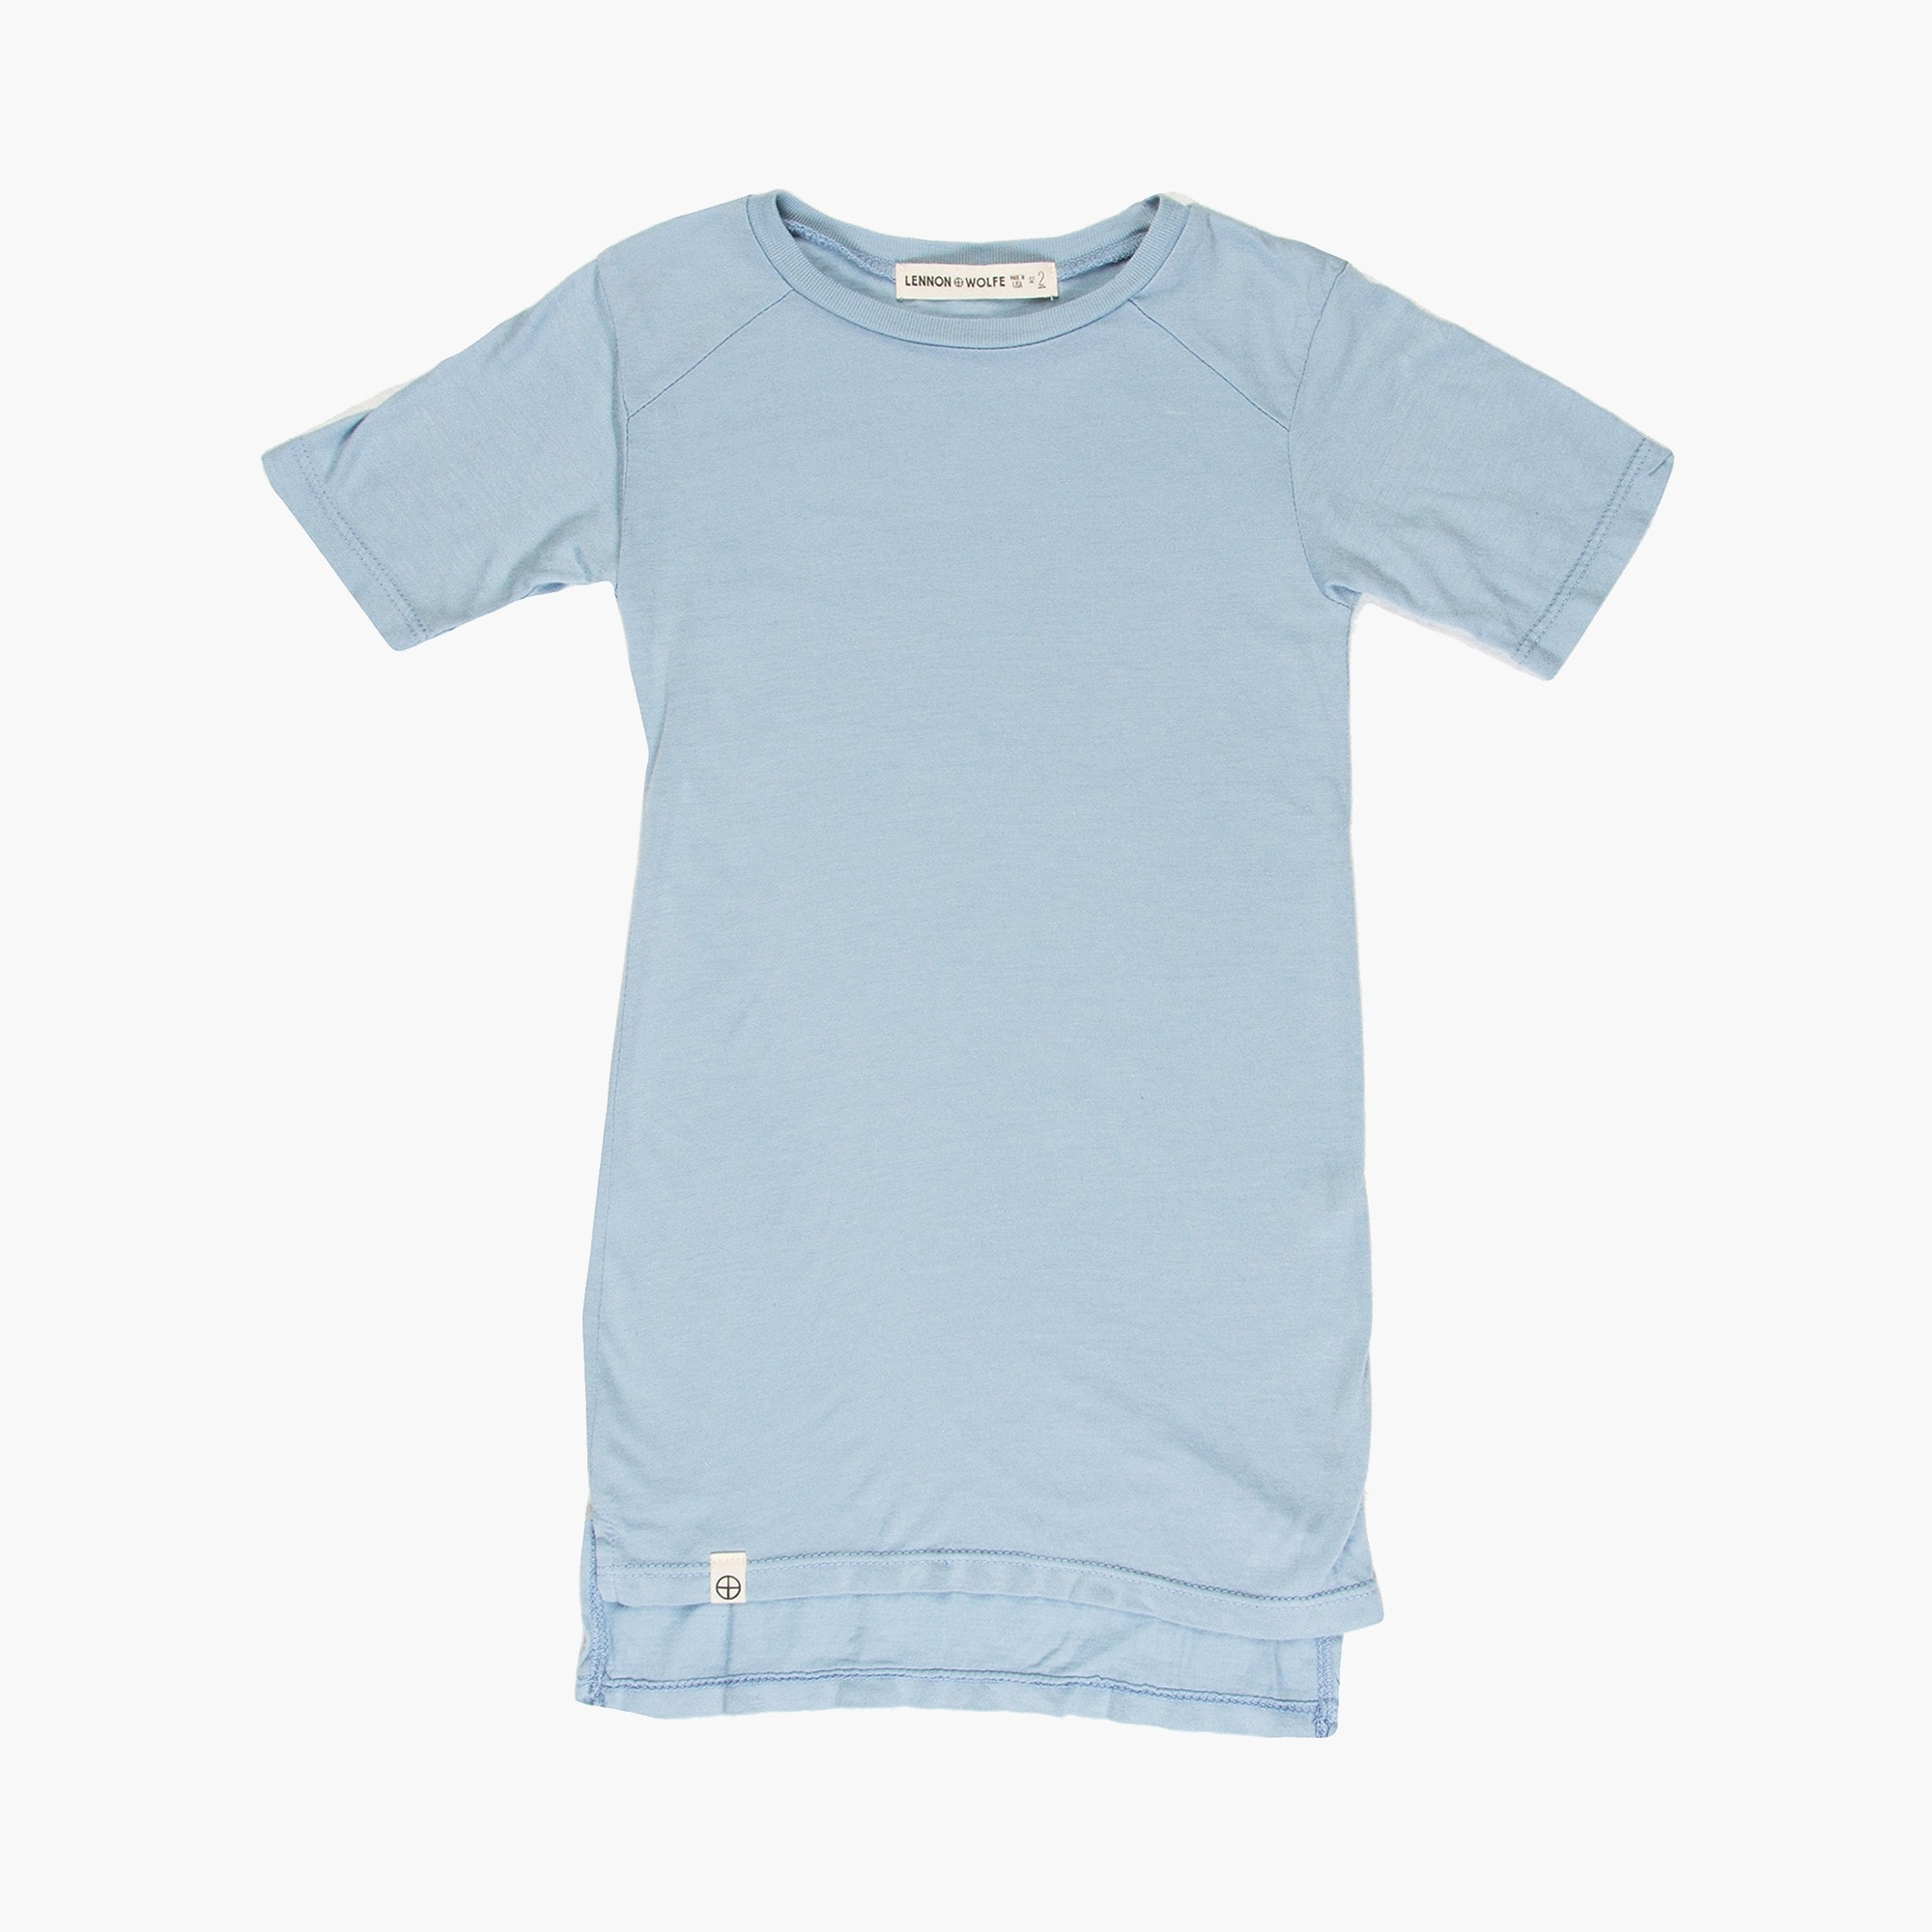 girls Kids' Lennon + Wolfe™ Luna T-shirt dress